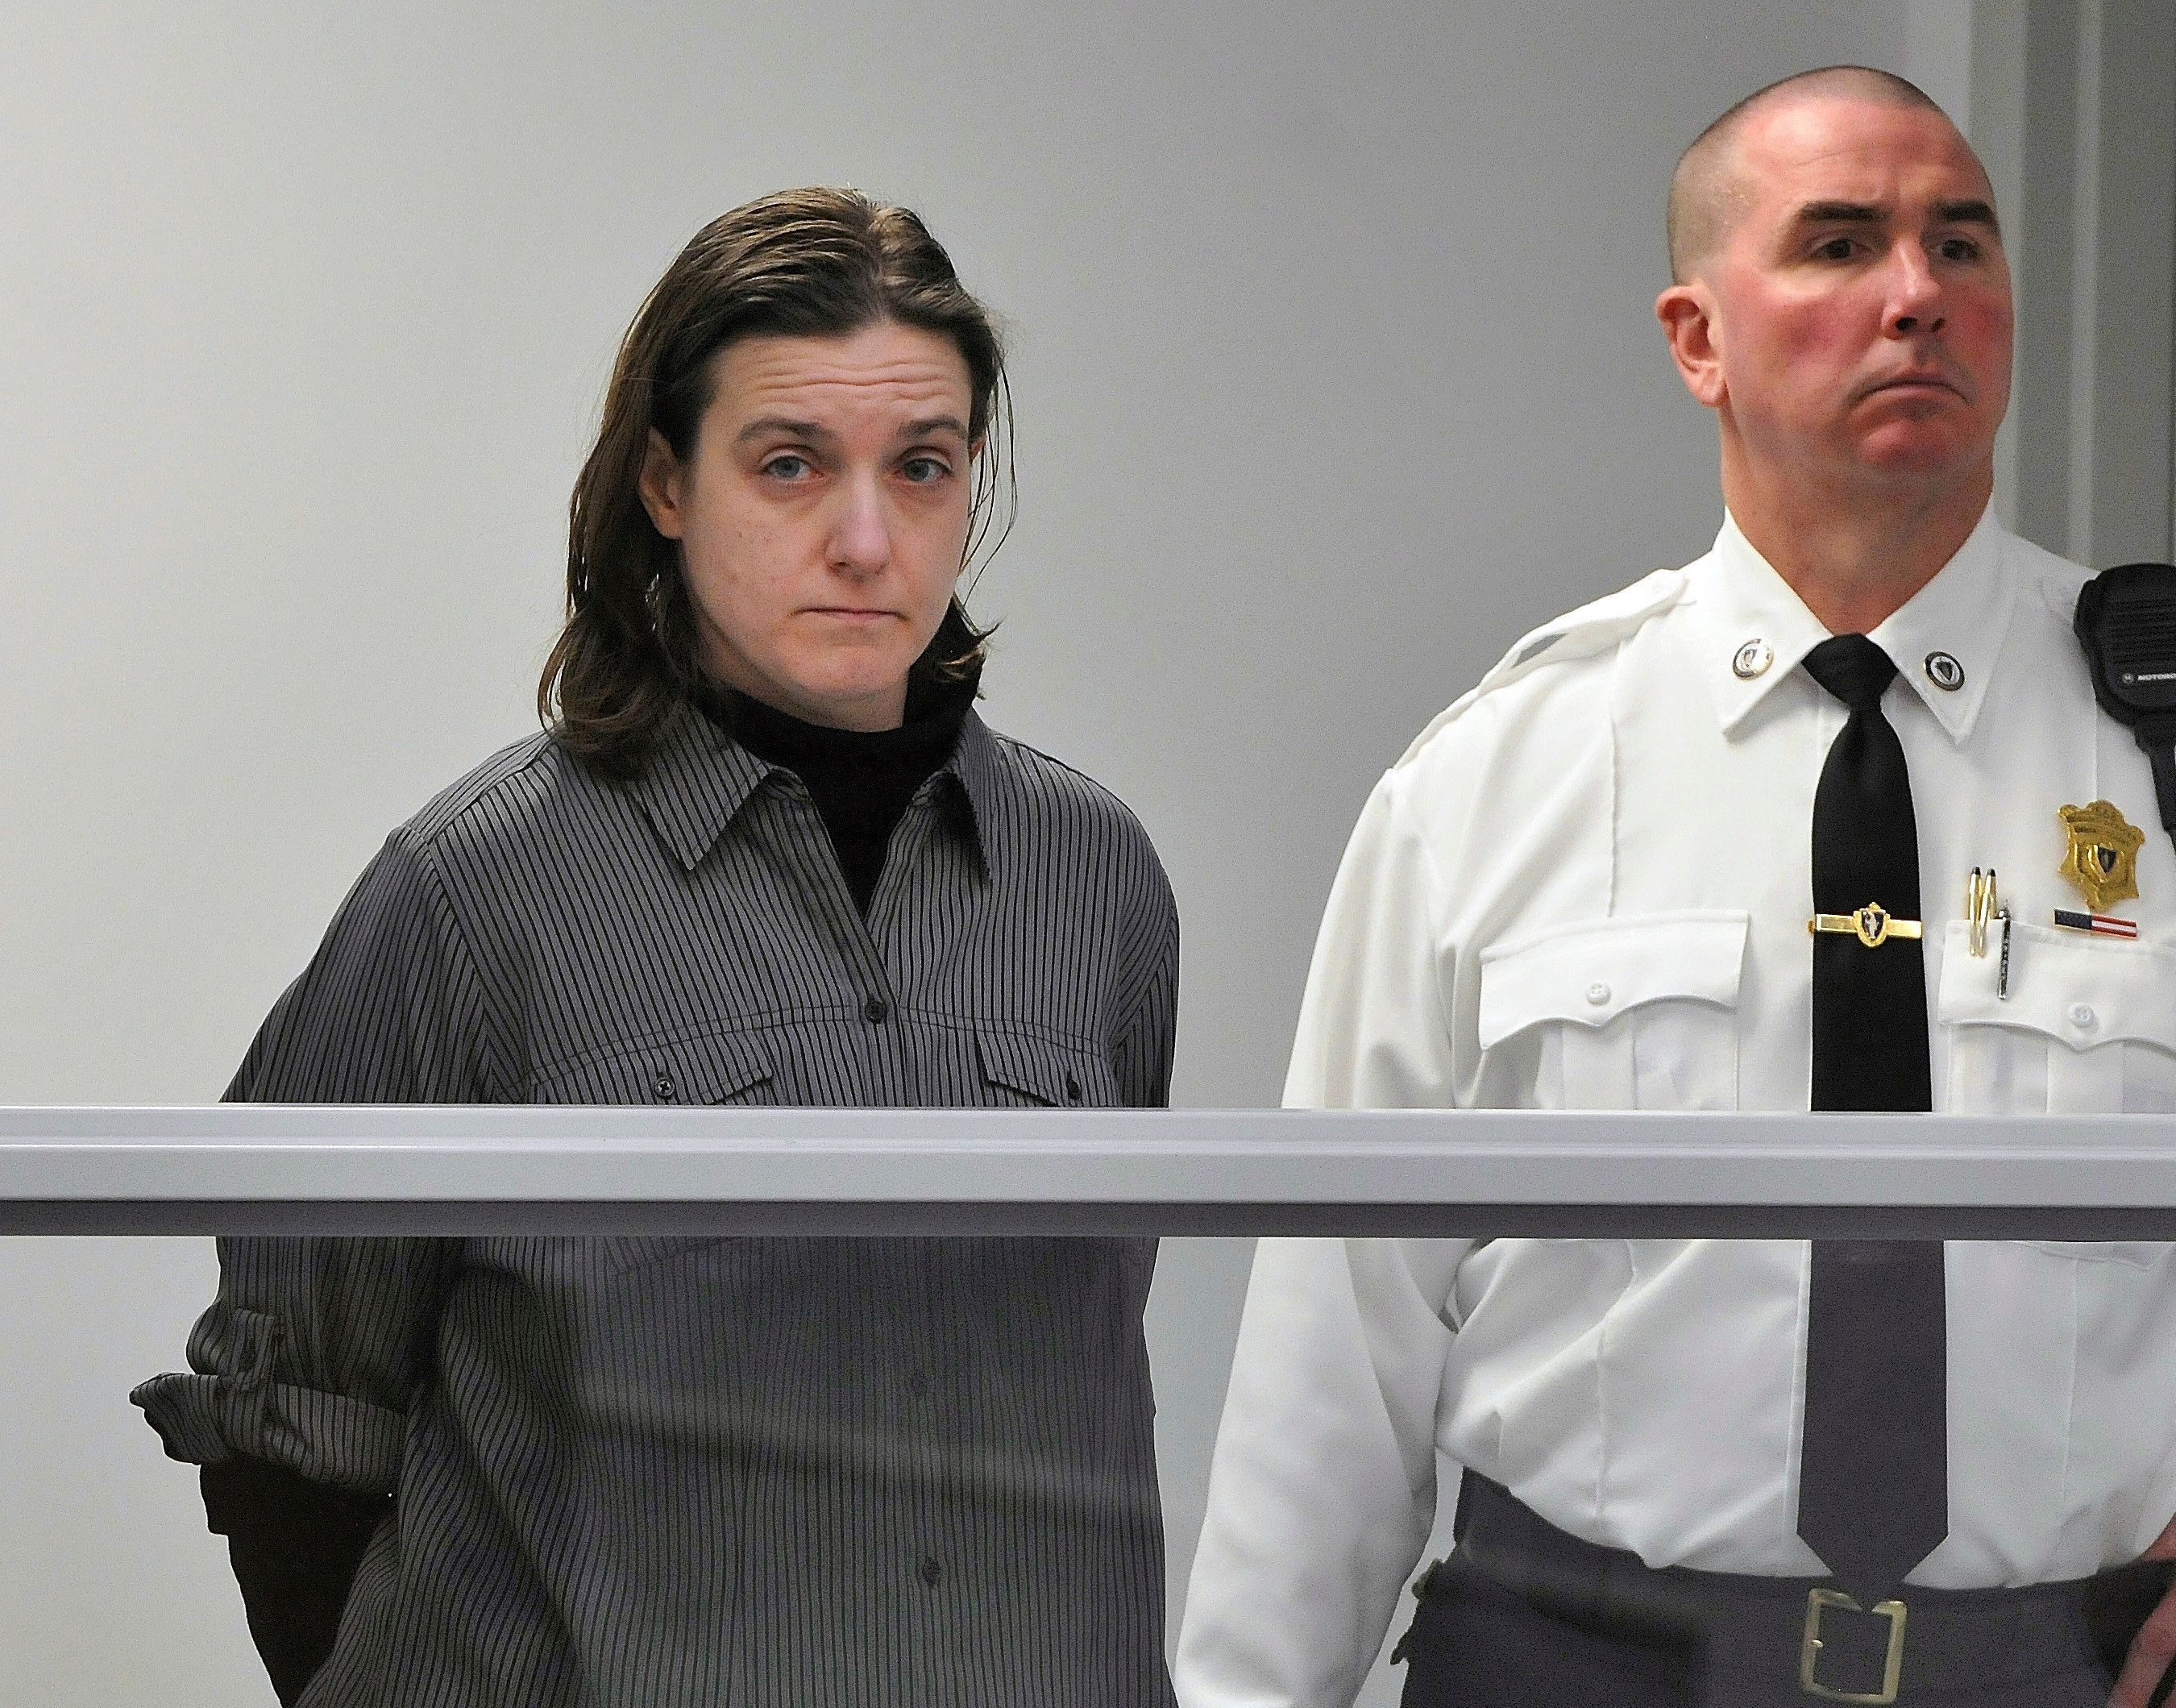 Former state chemist Sonja Farak pleaded guilty in 2014 to stealing and using drugs from the